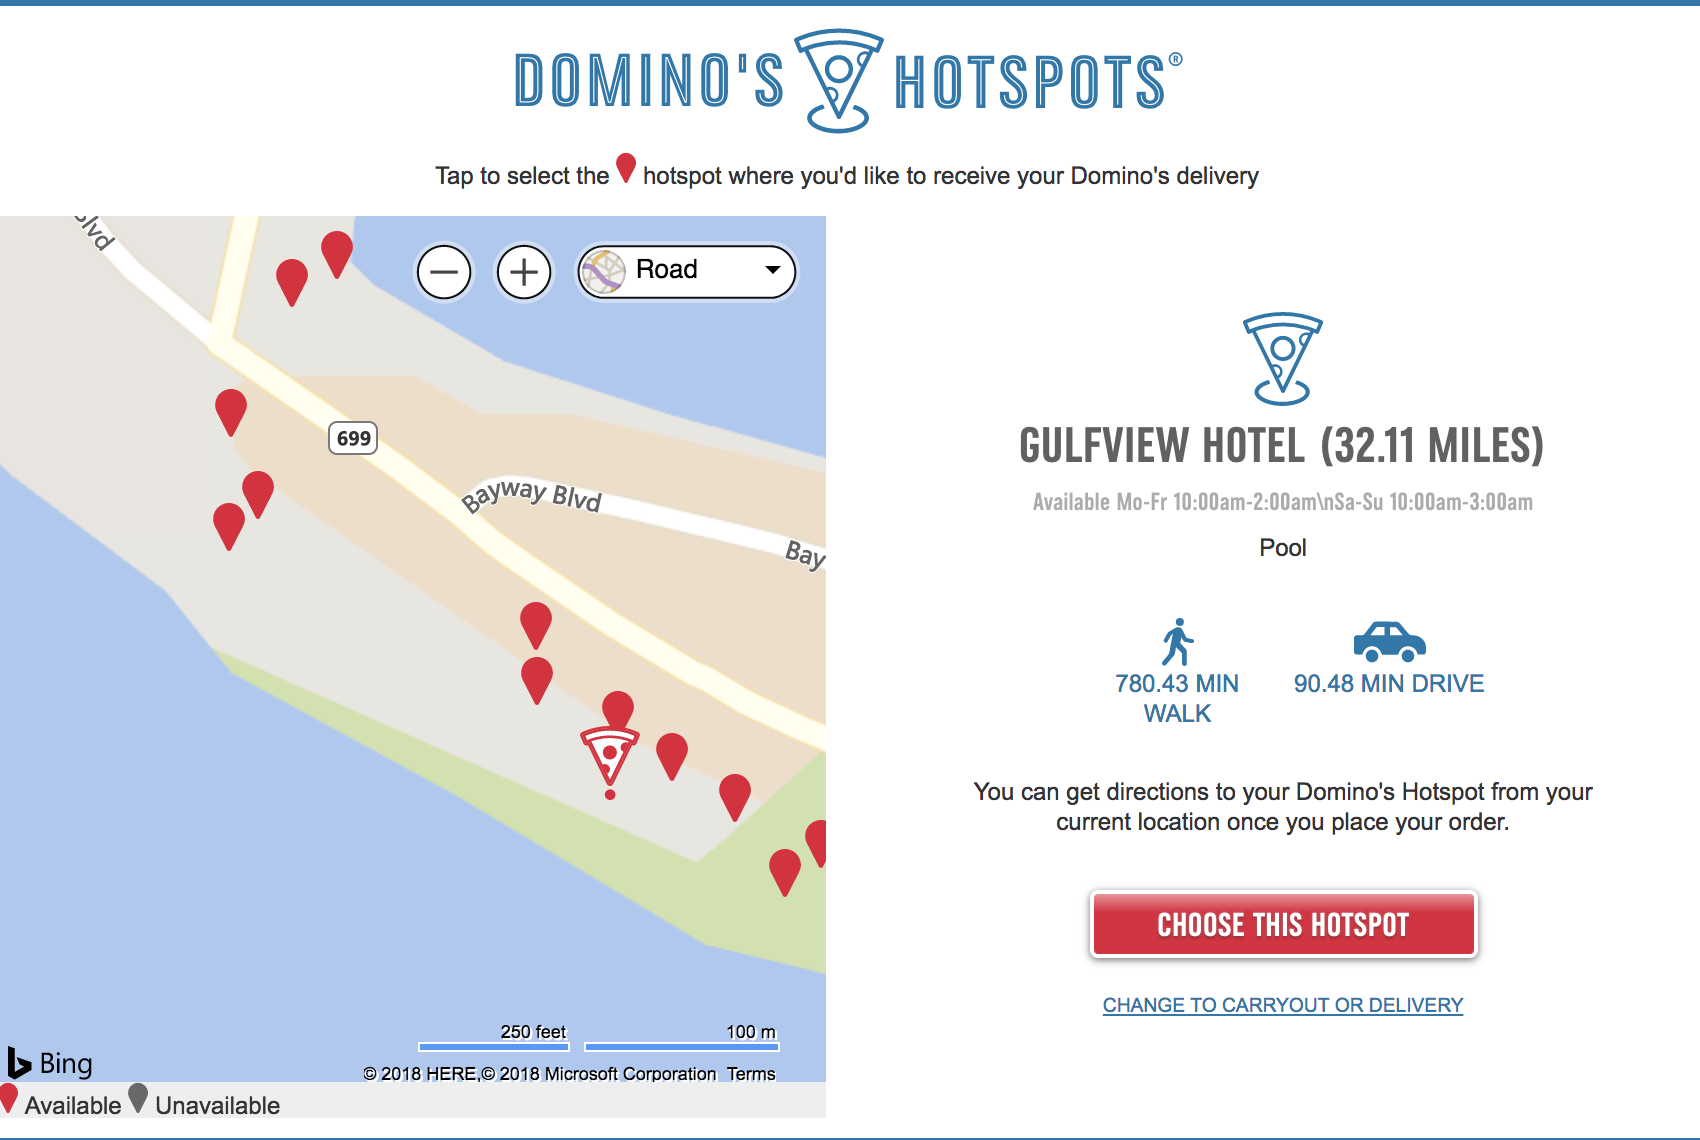 Domino's To Deliver To Even More Locations - Including The Beach